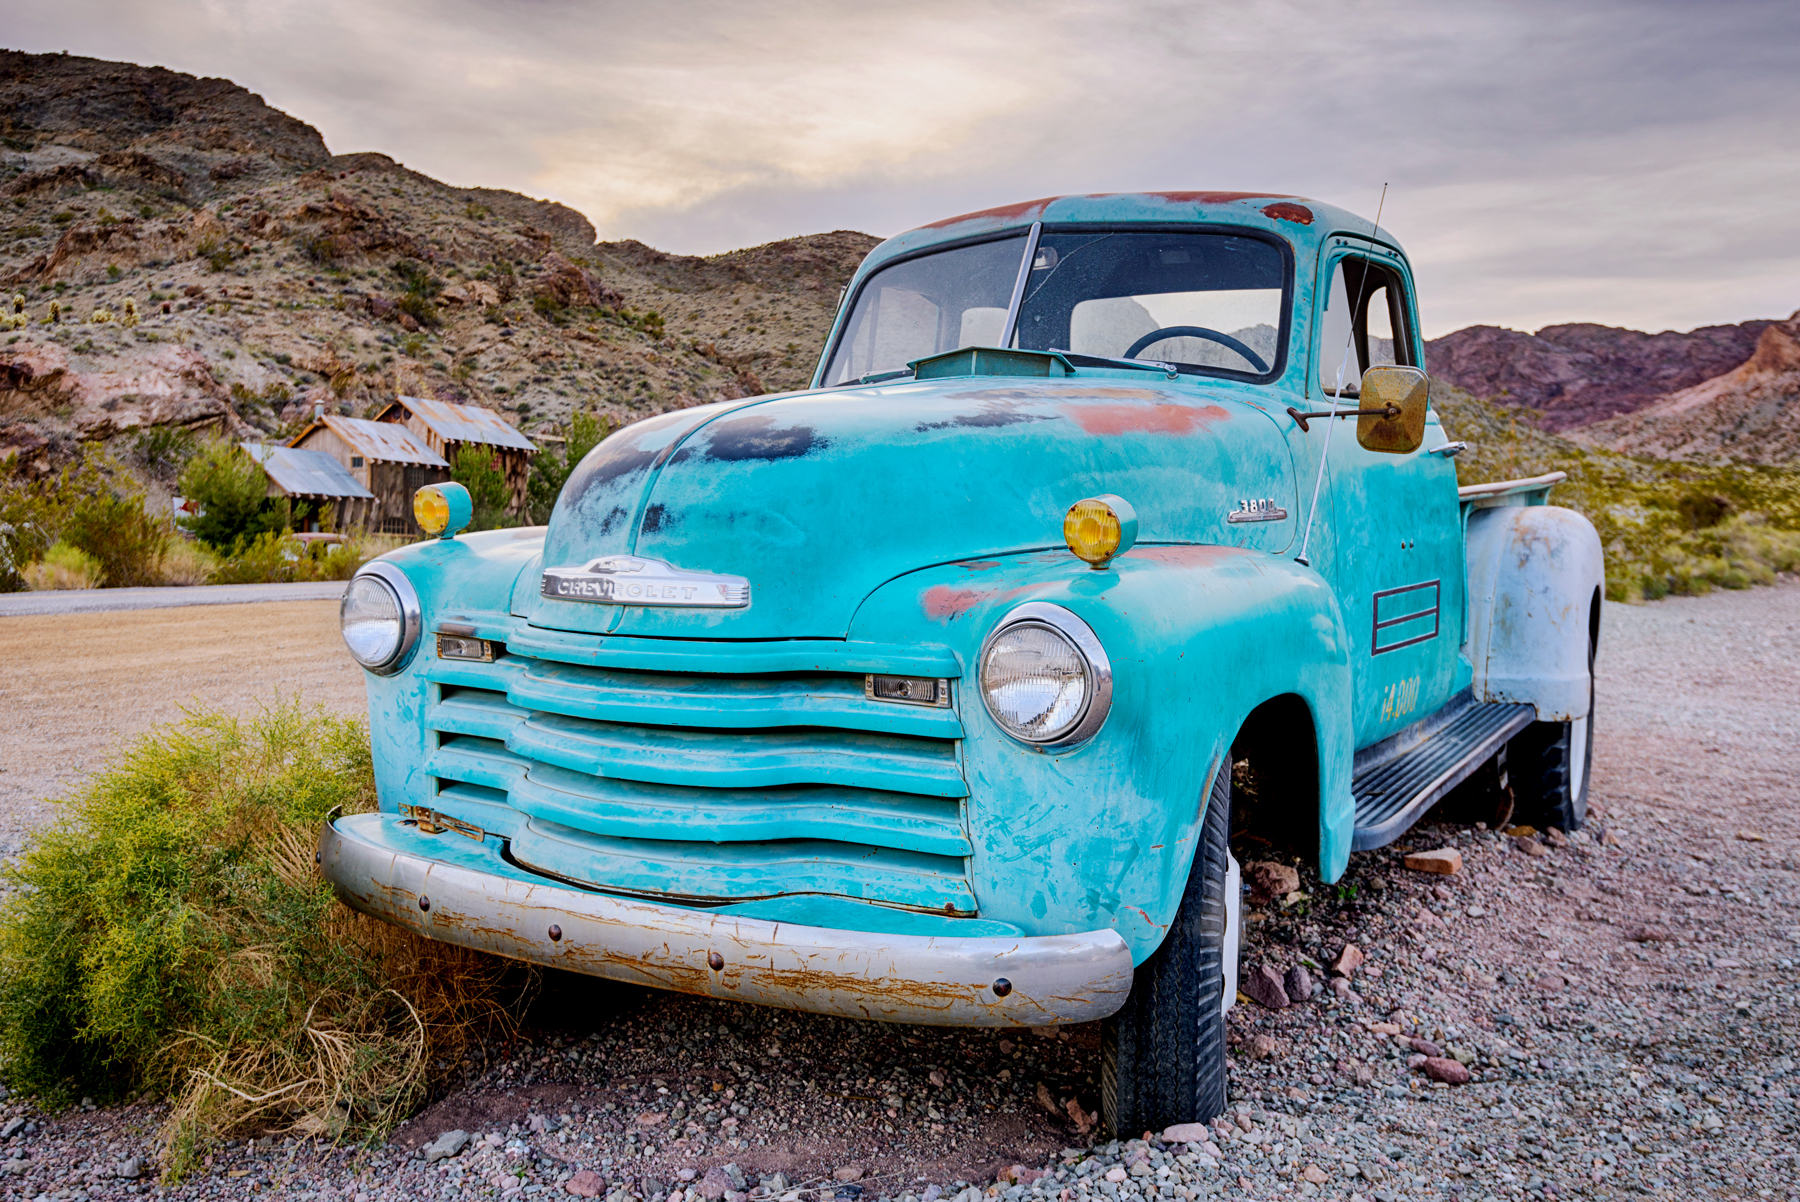 Old Vintage Pickup Truck Photography Aron Kearney Photography